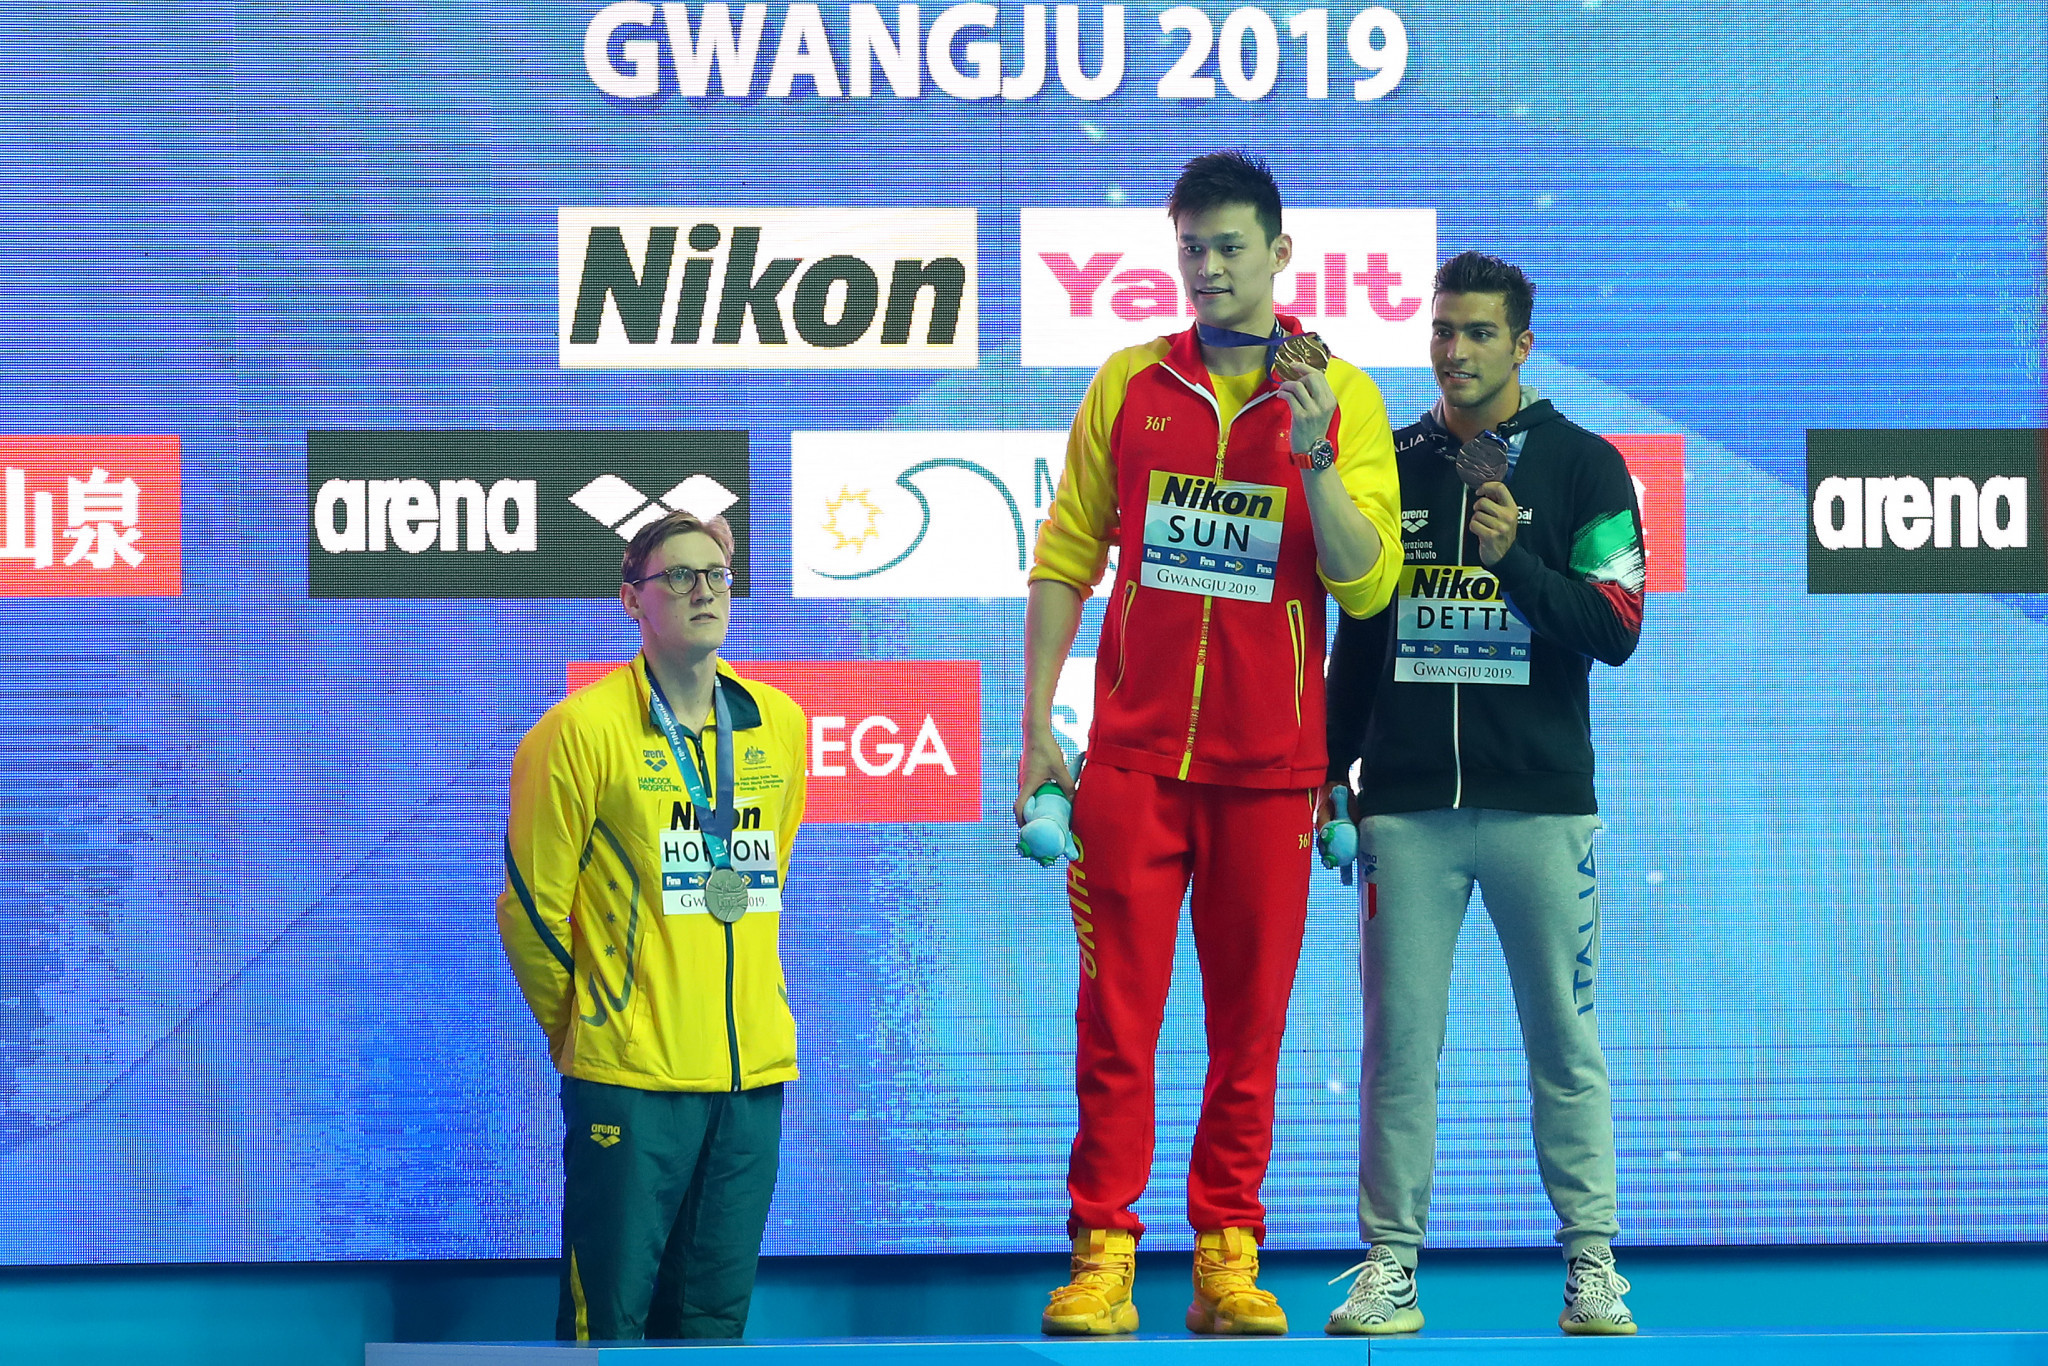 Horton makes podium protest as controversial Chinese swimmer Sun claims gold in Gwangju